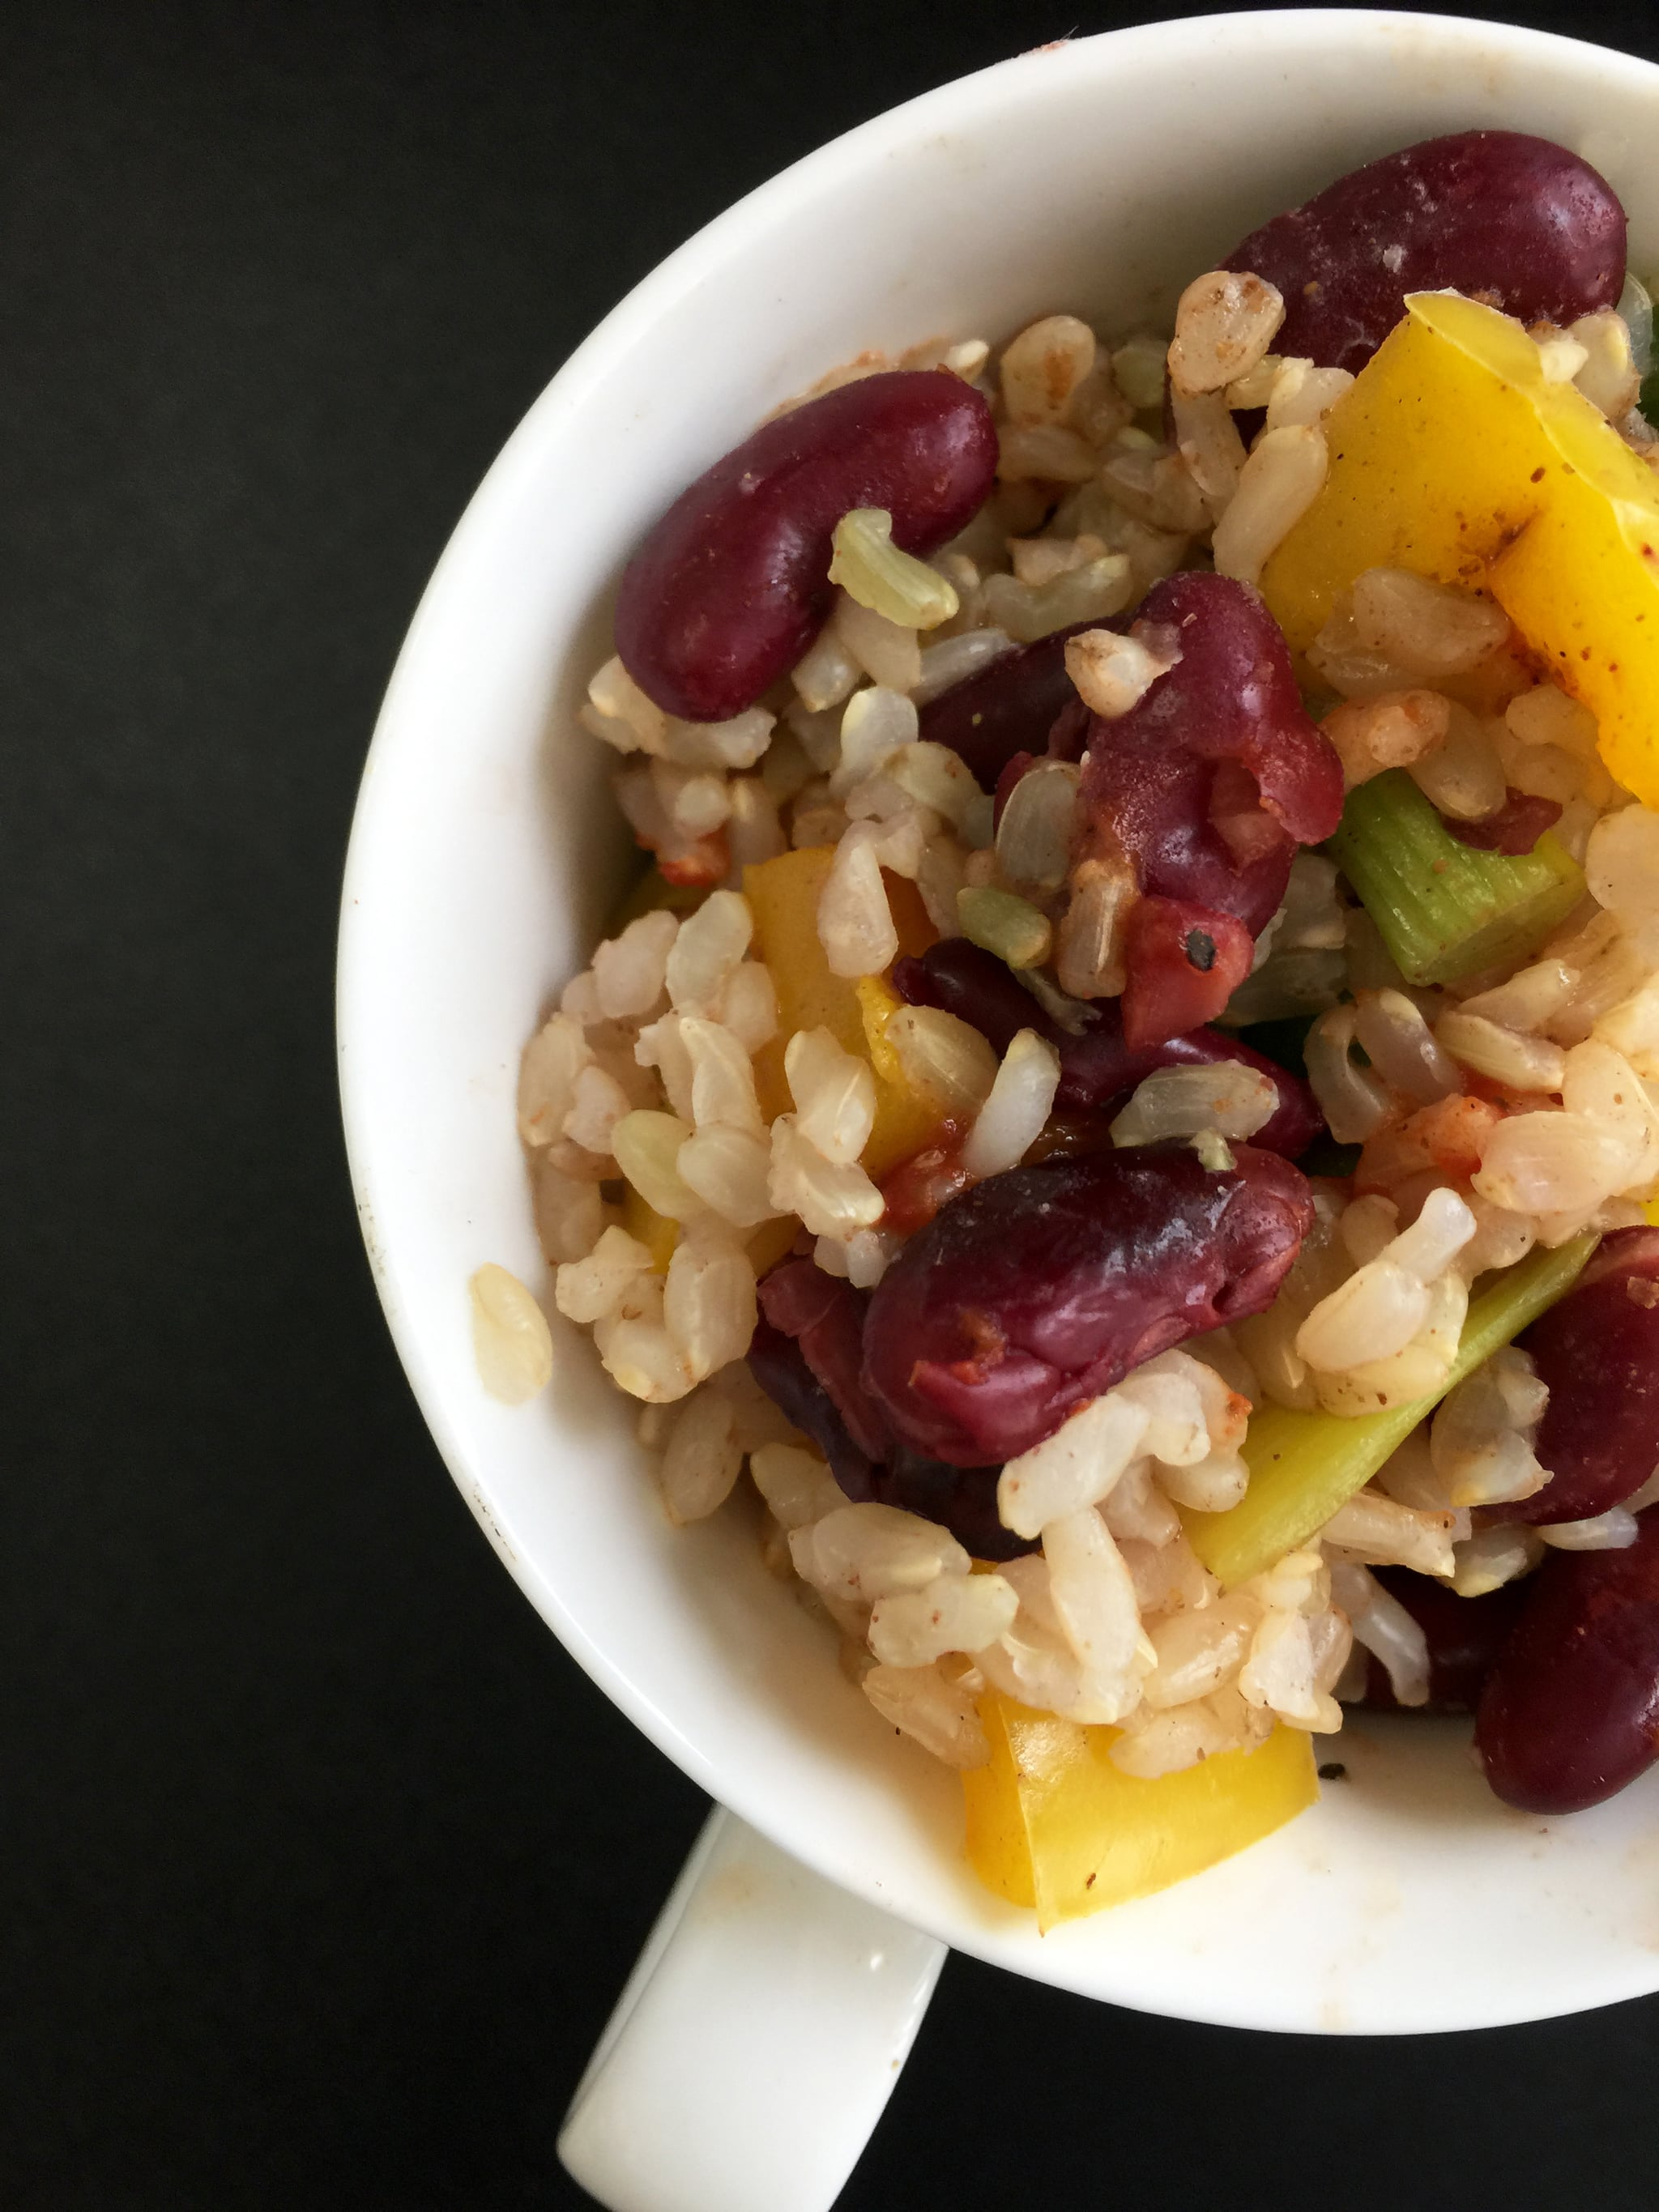 Microwaveable mug recipe indian red beans and rice popsugar food forumfinder Choice Image